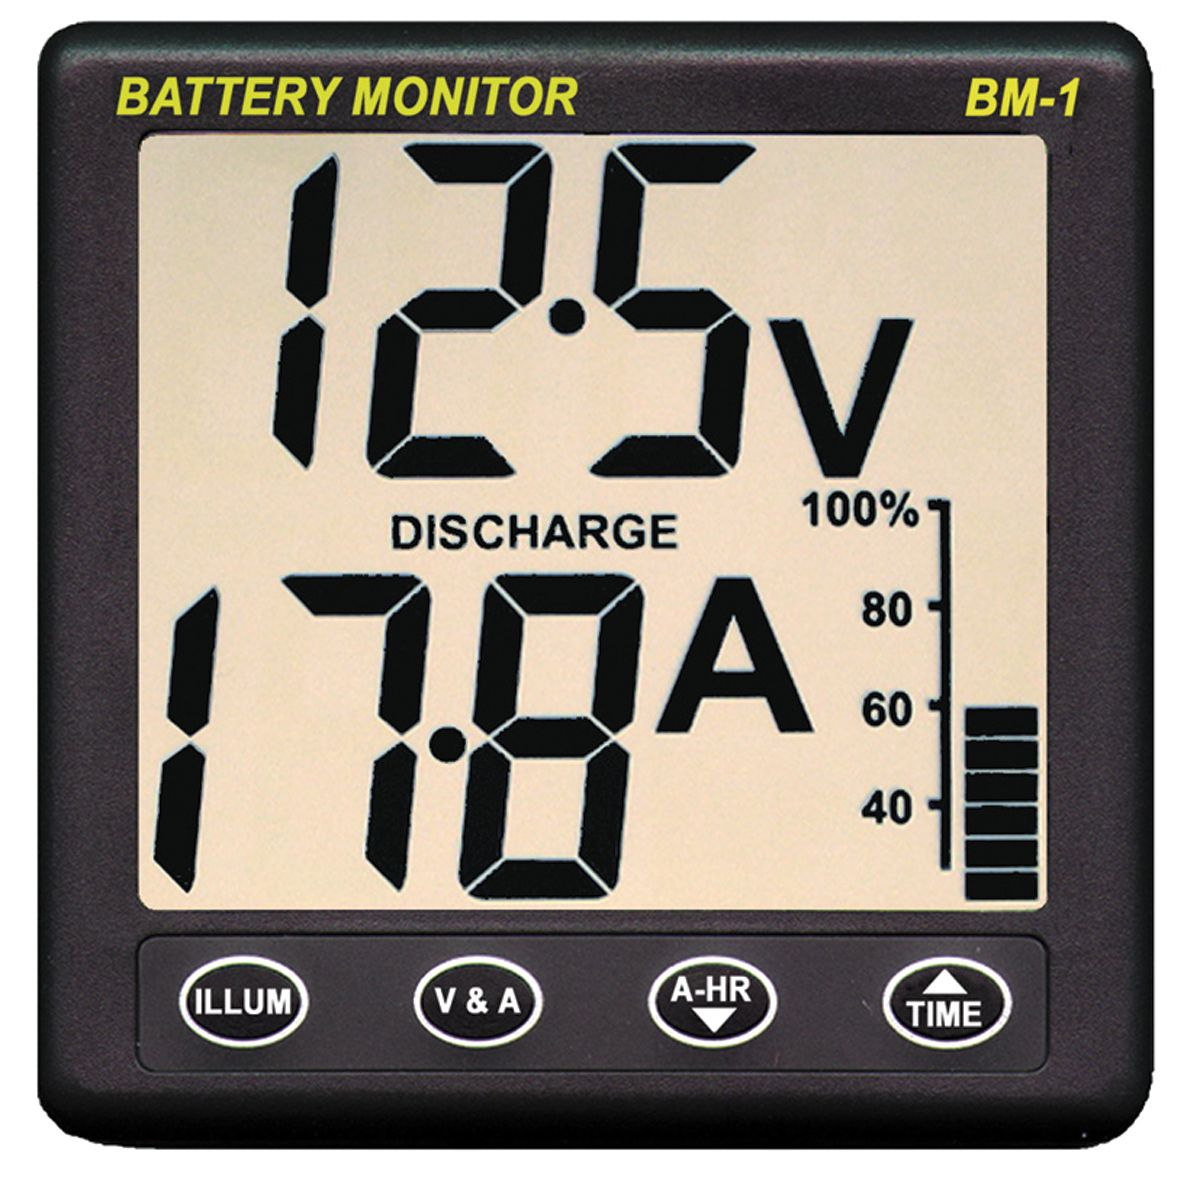 600 Amp Battery Charging System Monitor : Clipper bm battery monitor nasa marine instruments